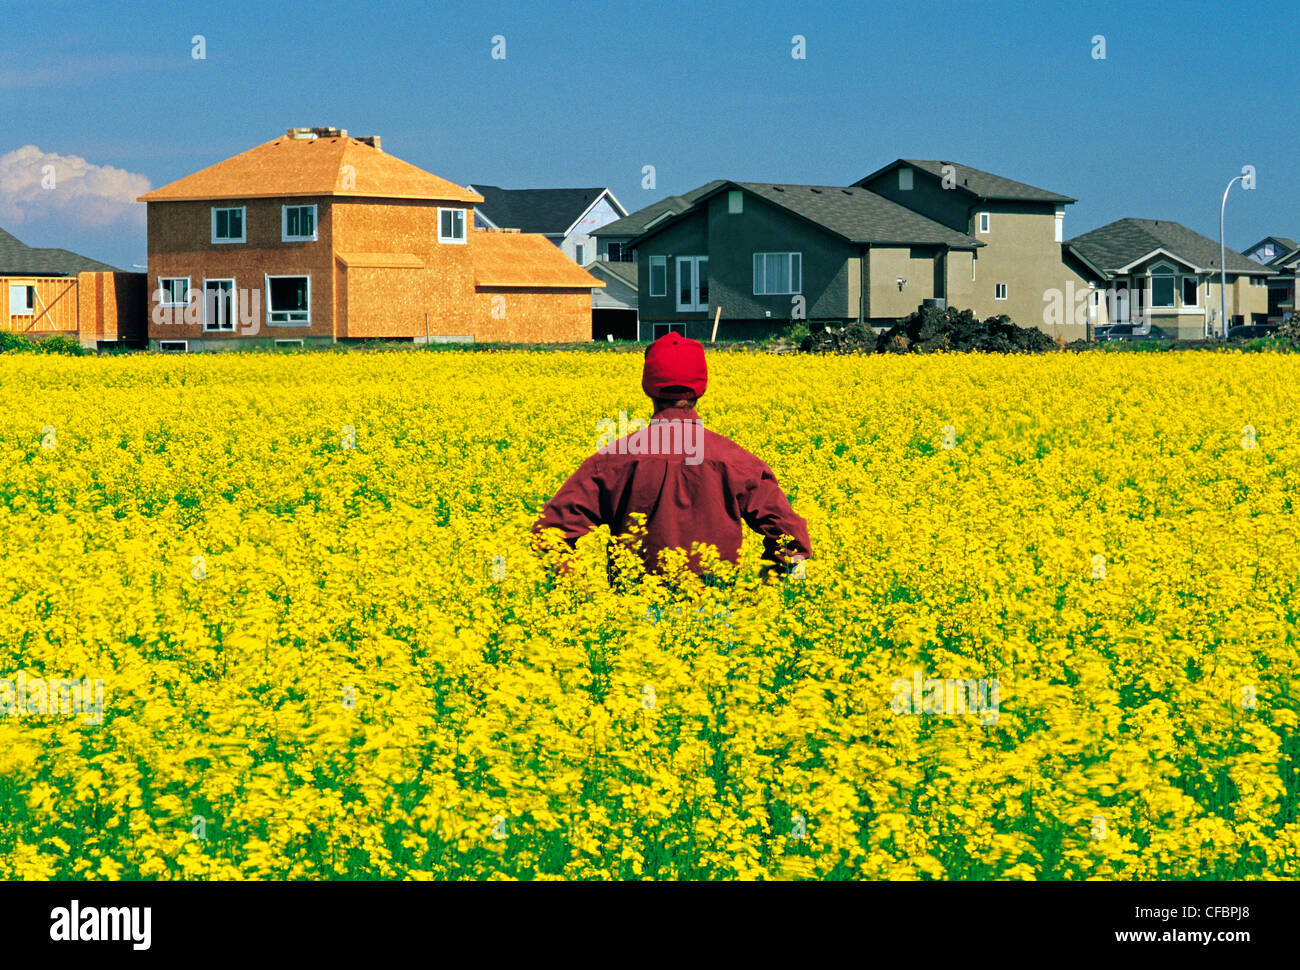 A farmer looks out over his blooming canola field with urban sprawl in the background, Winnipeg, Manitoba, Canada - Stock Image